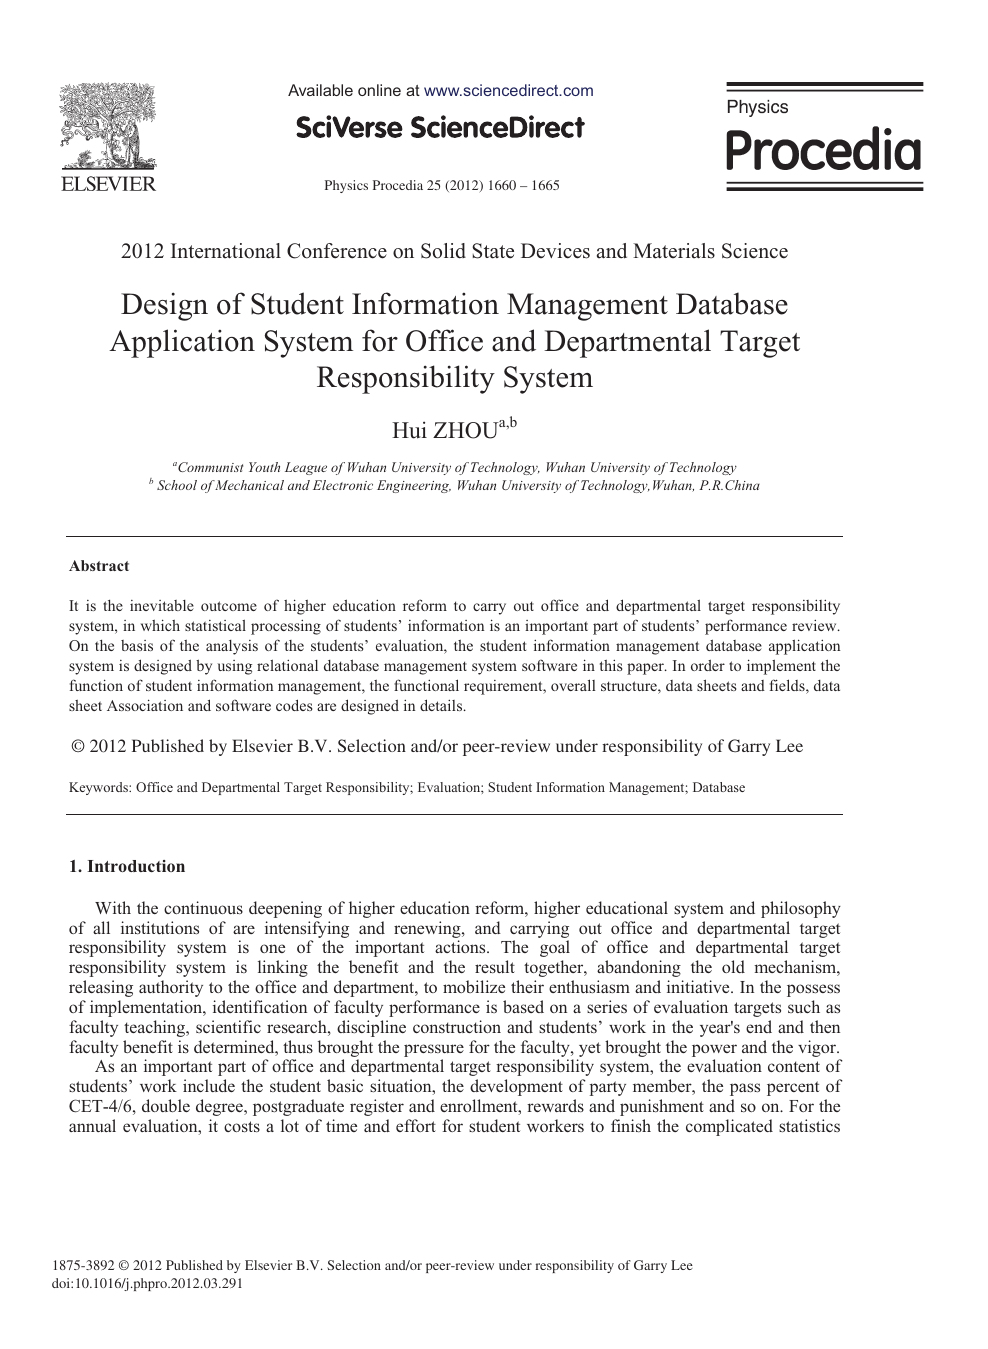 Design Of Student Information Management Database Application System For Office And Departmental Target Responsibility System Topic Of Research Paper In Computer And Information Sciences Download Scholarly Article Pdf And Read For